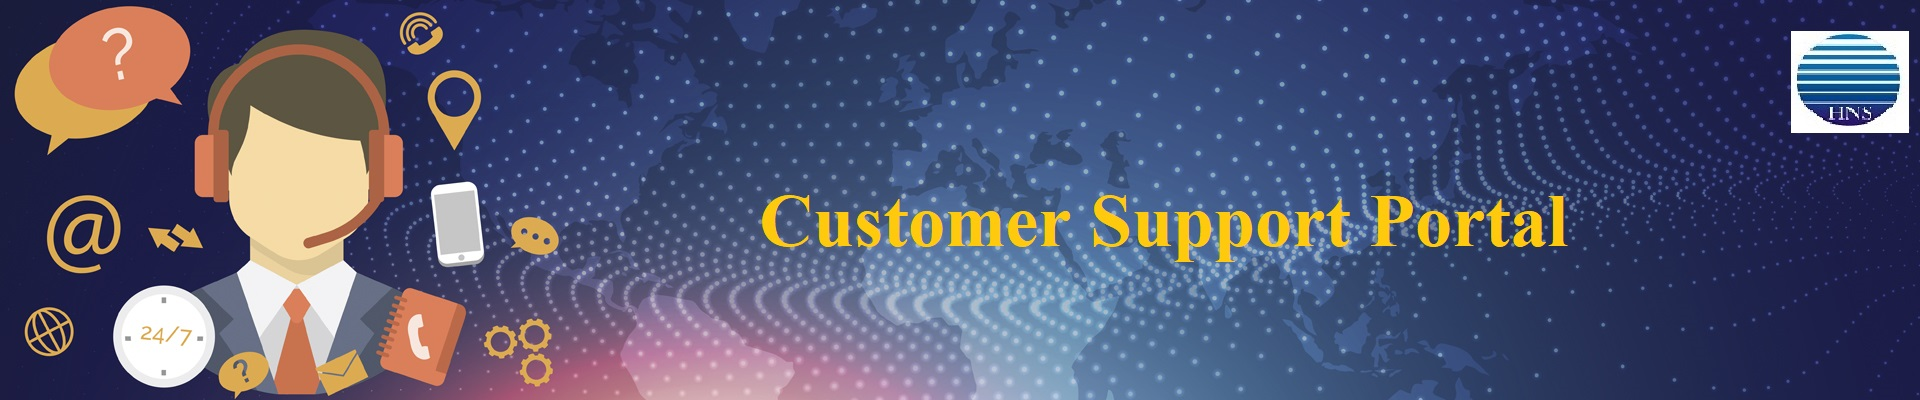 Customer Support Portal header - with hns